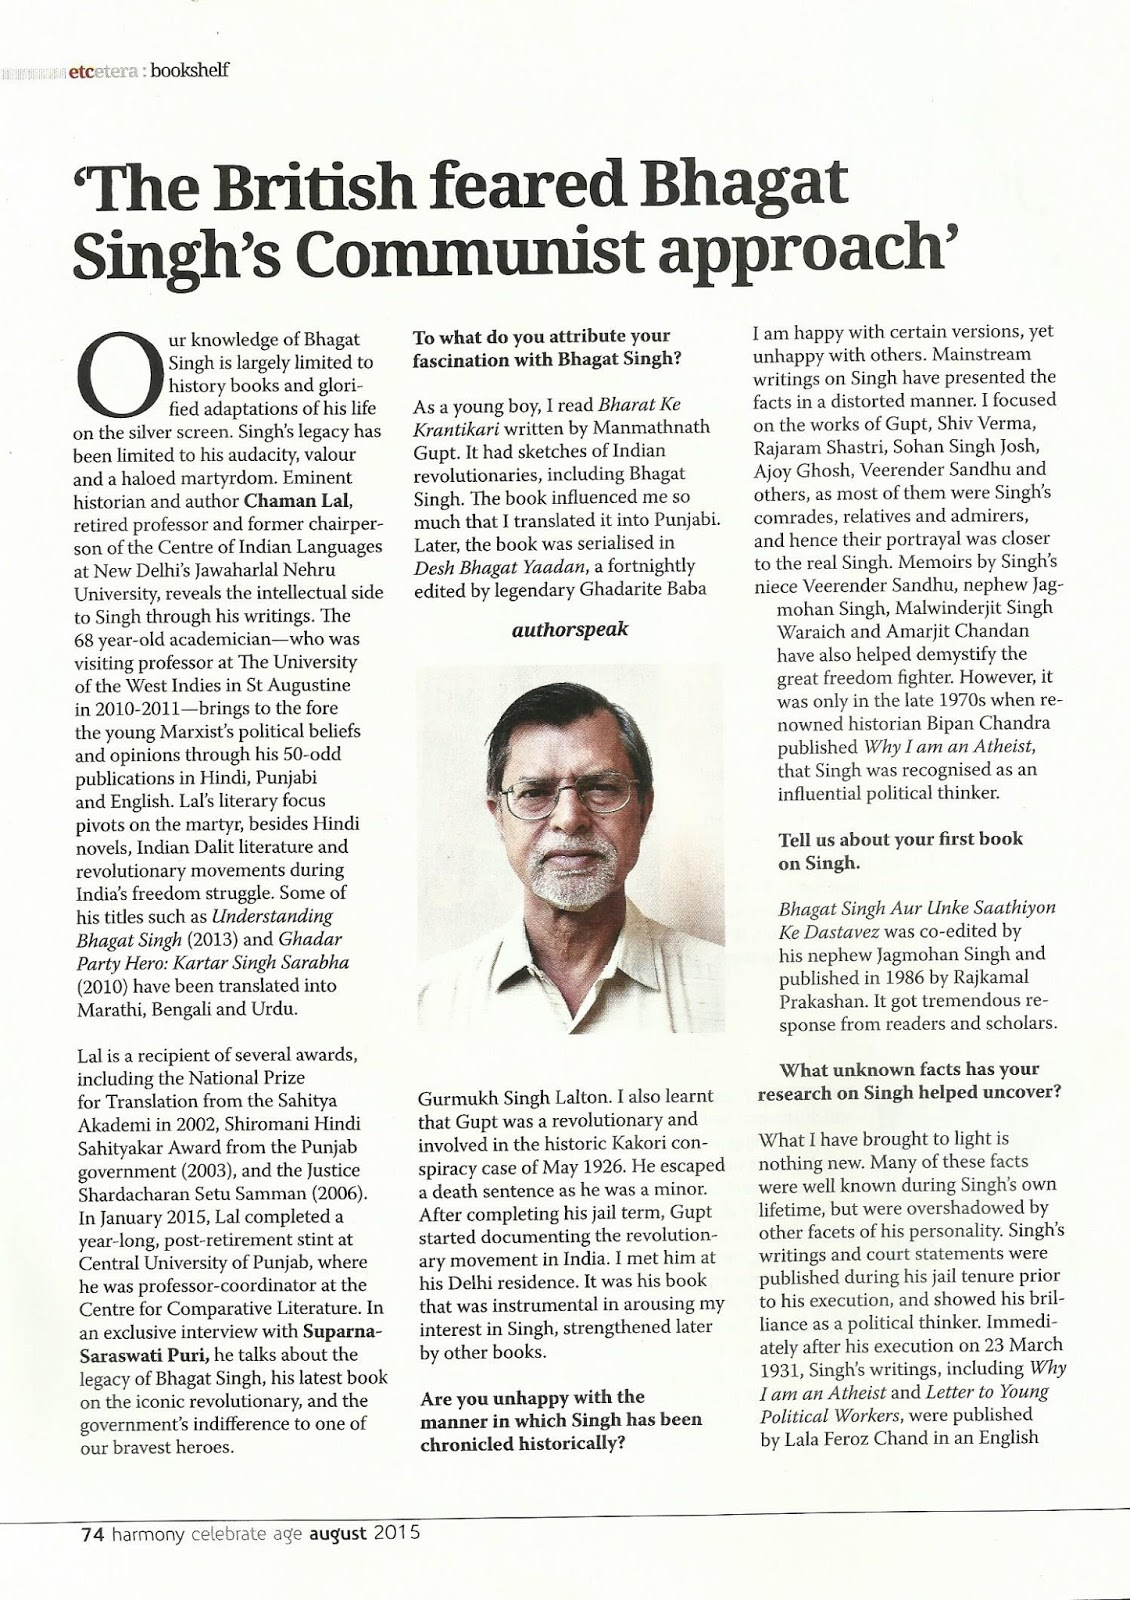 bhagat singh study chaman lal british feared bhagat singh  british feared bhagat singh become lenin of